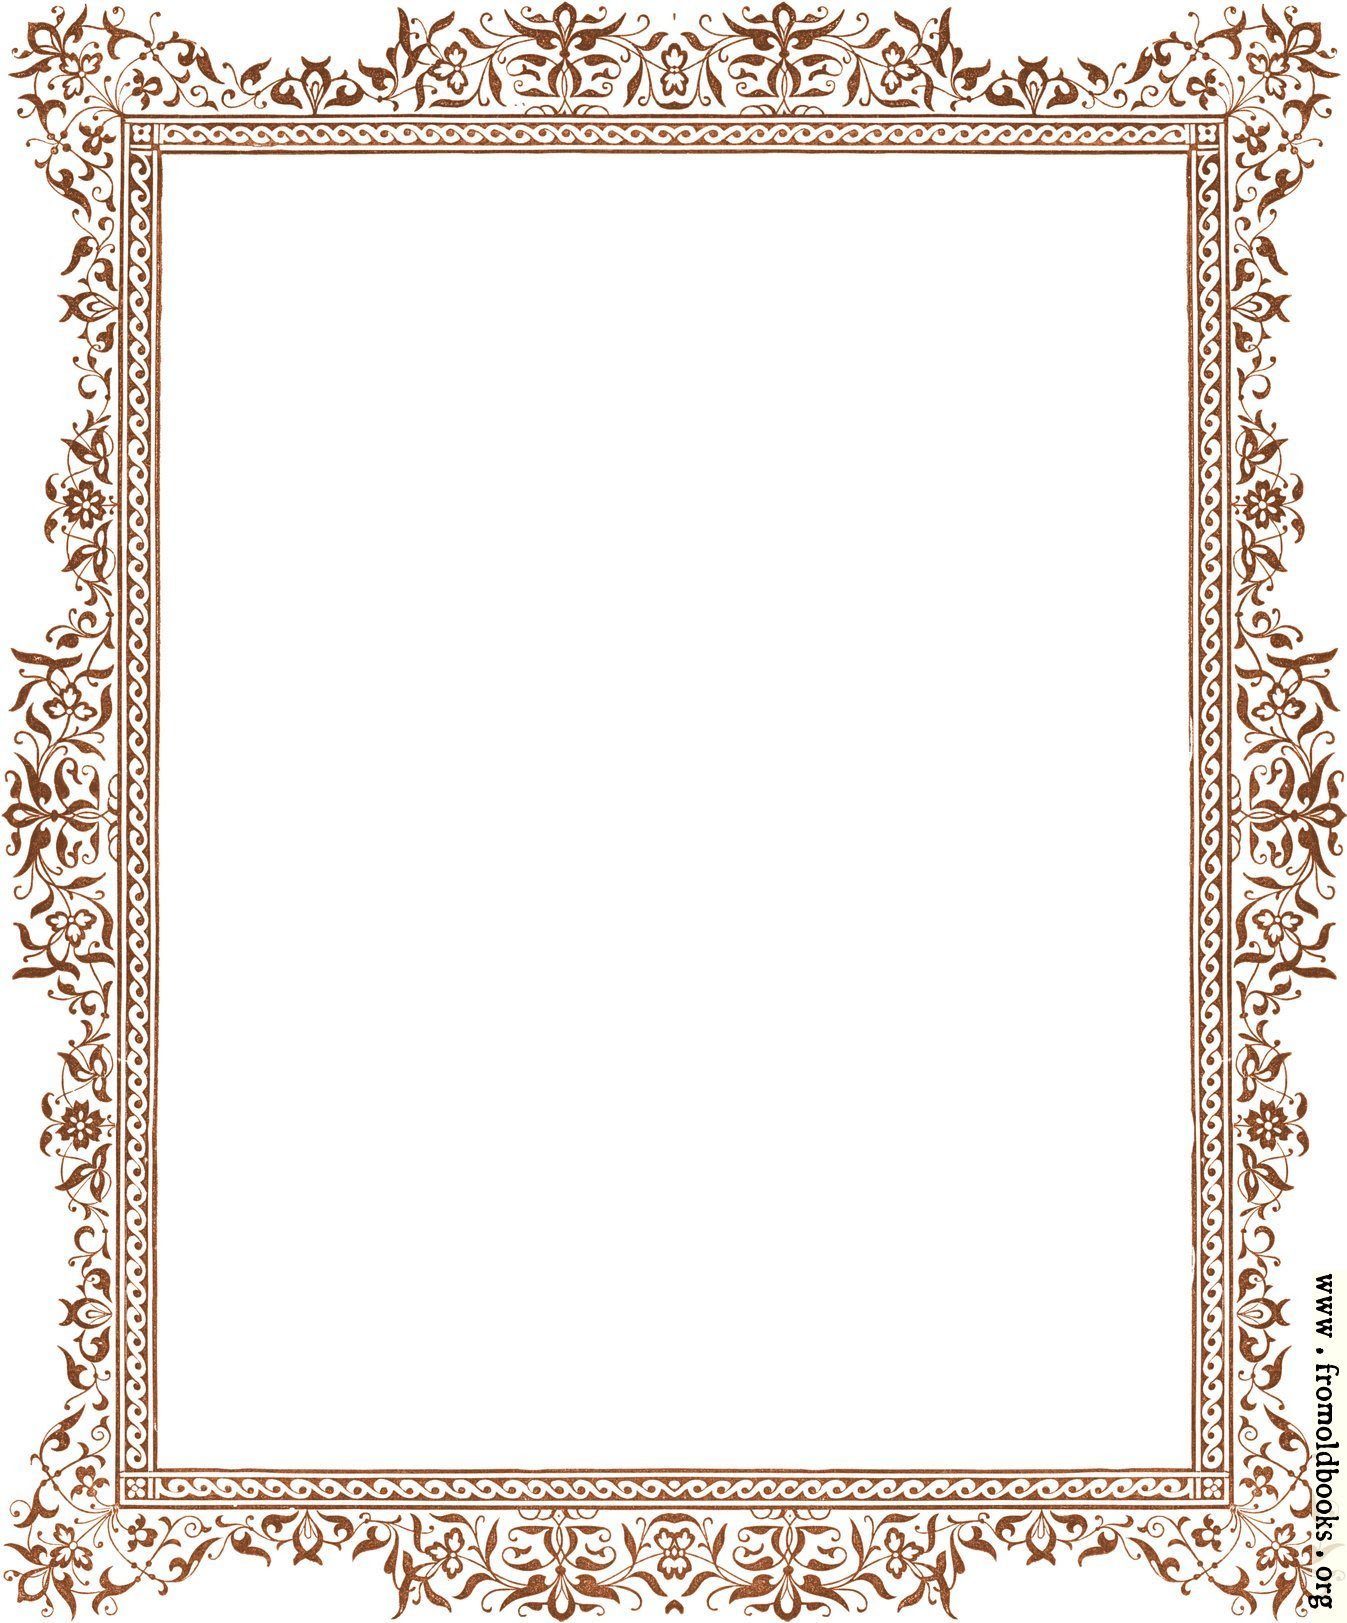 Decorative clip-art Victorian border, antique brown [image